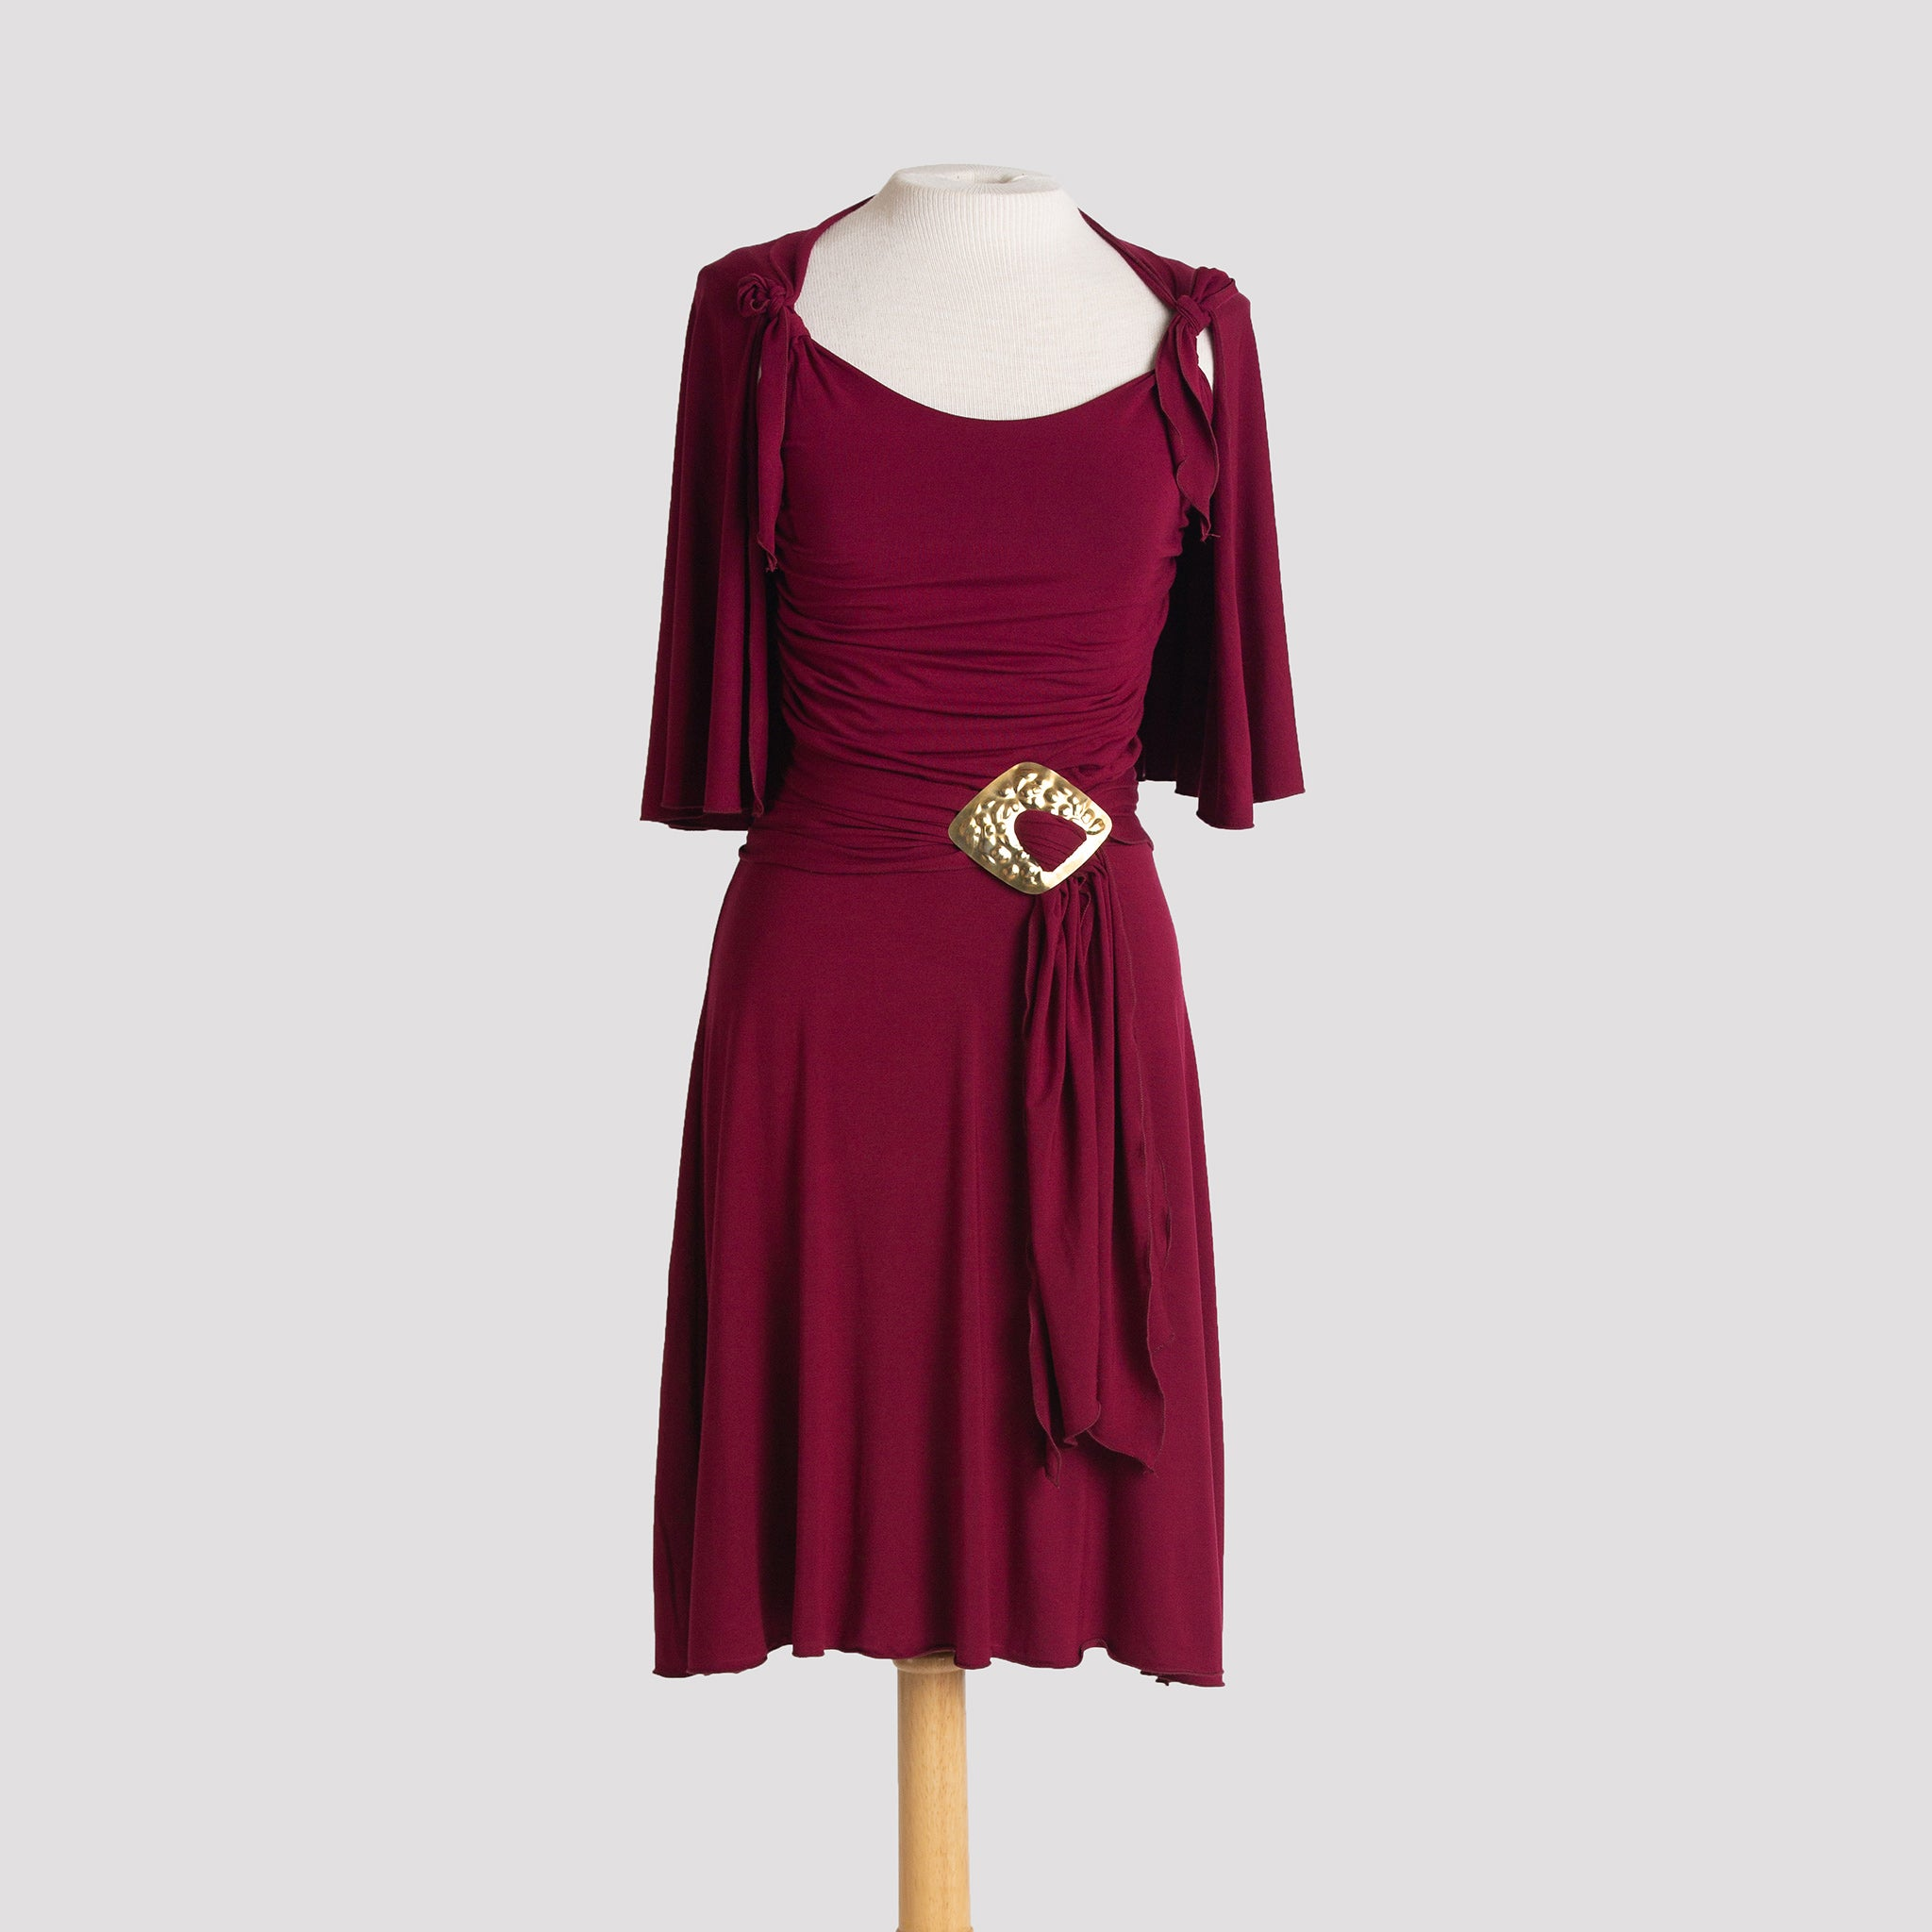 Audrey Dress in Burgundy with cape, sash & diamond buckle